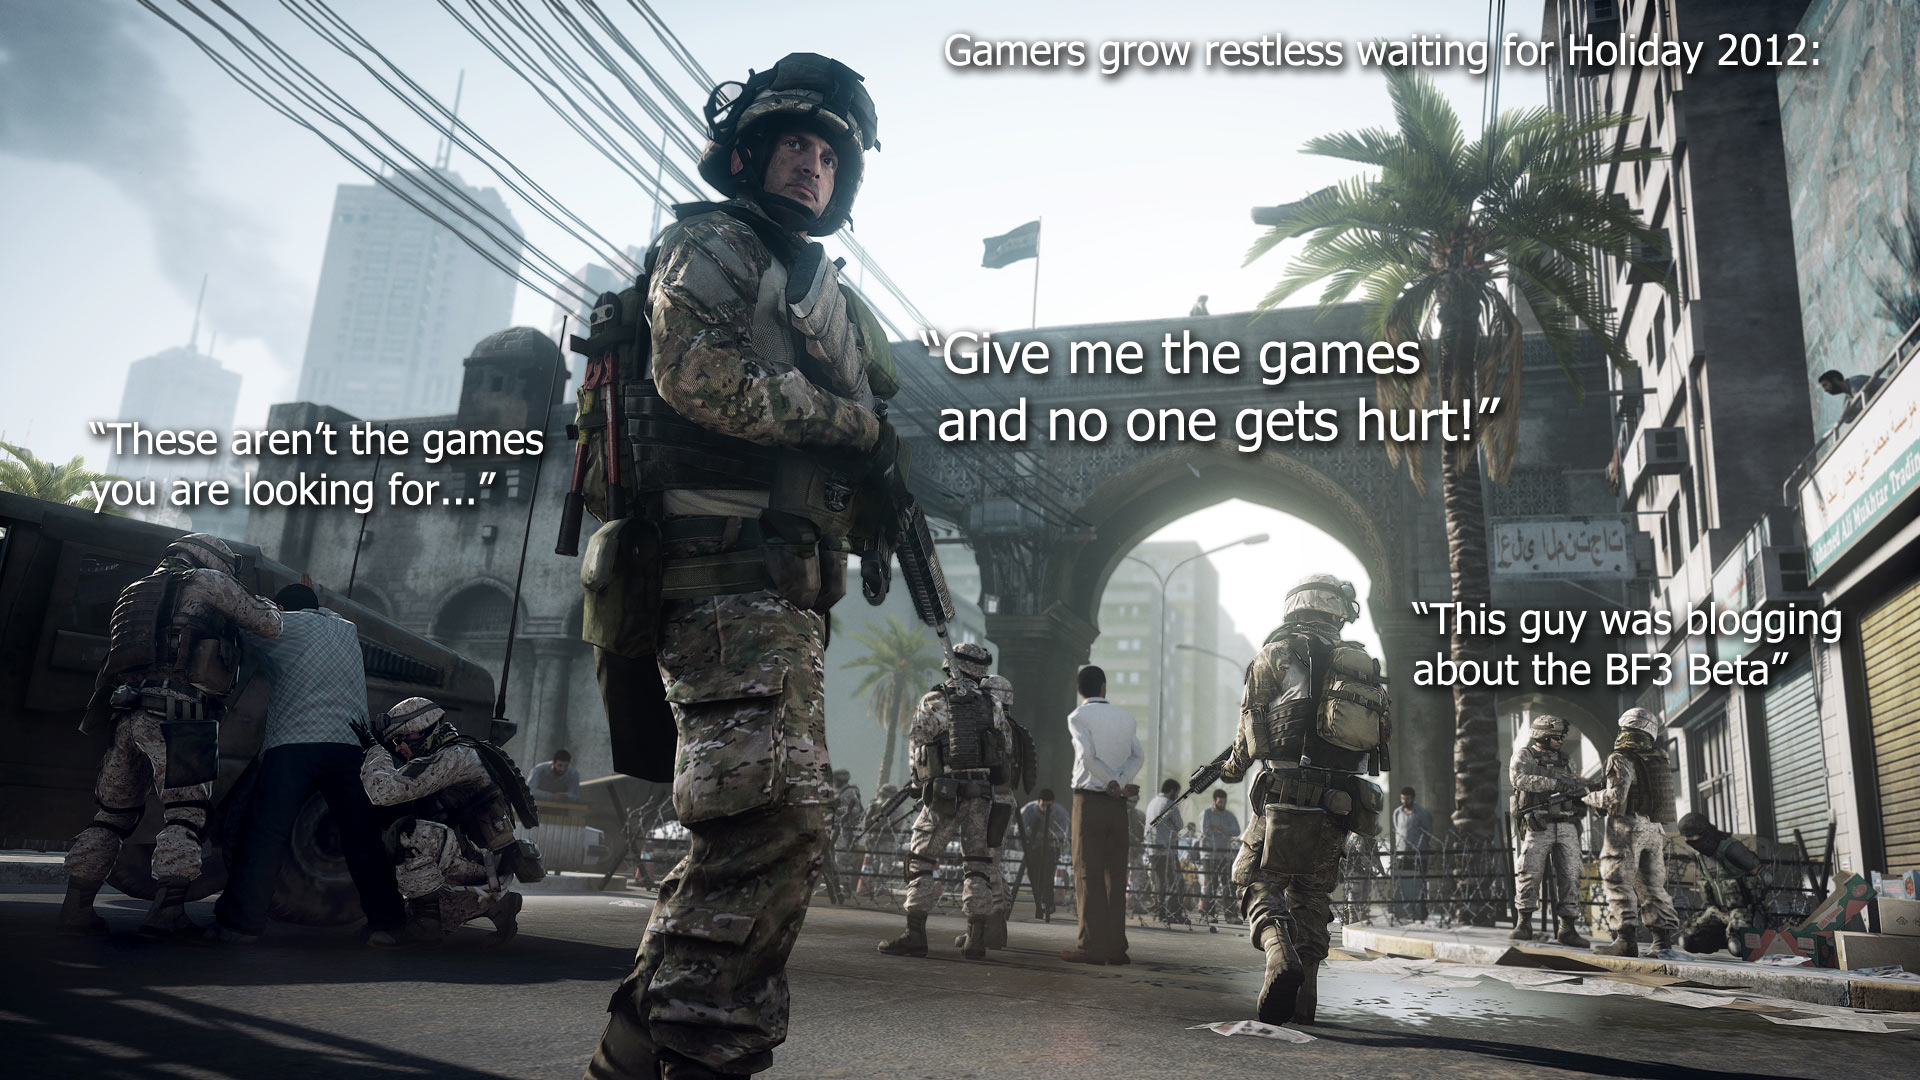 Battlefield3-Biased-Gamer-Holiday-Wishlist.jpg